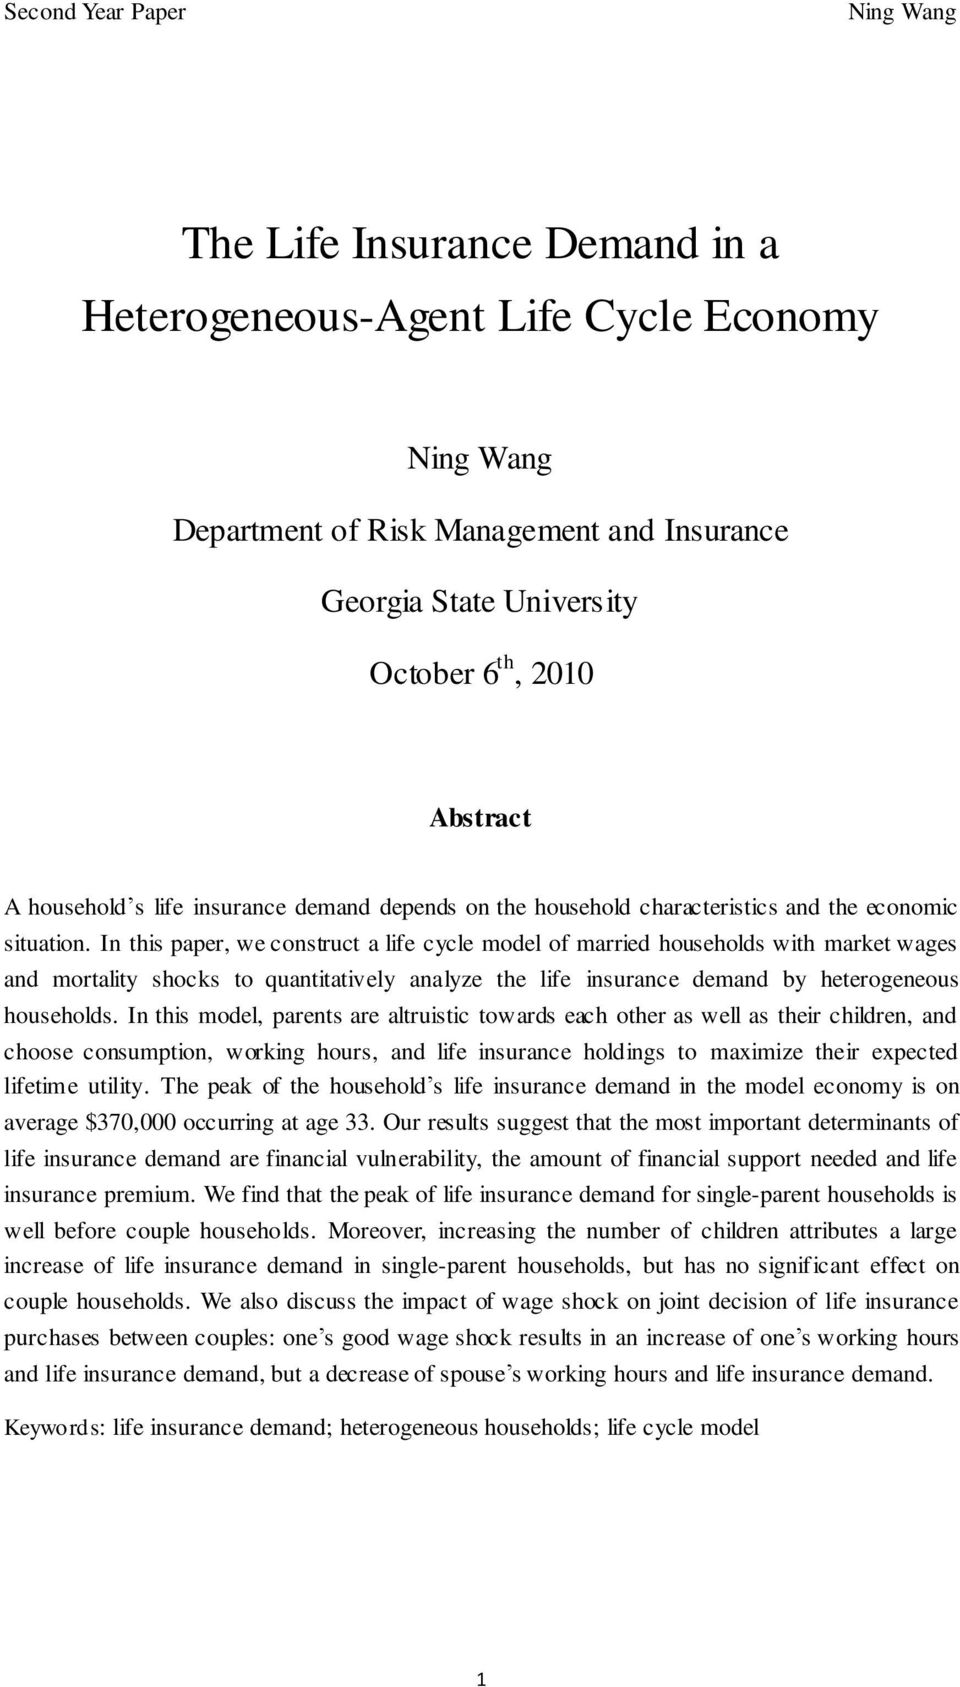 In this paper, we construct a life cycle model of married households with market wages and mortality shocks to quantitatively analyze the life insurance demand by heterogeneous households.